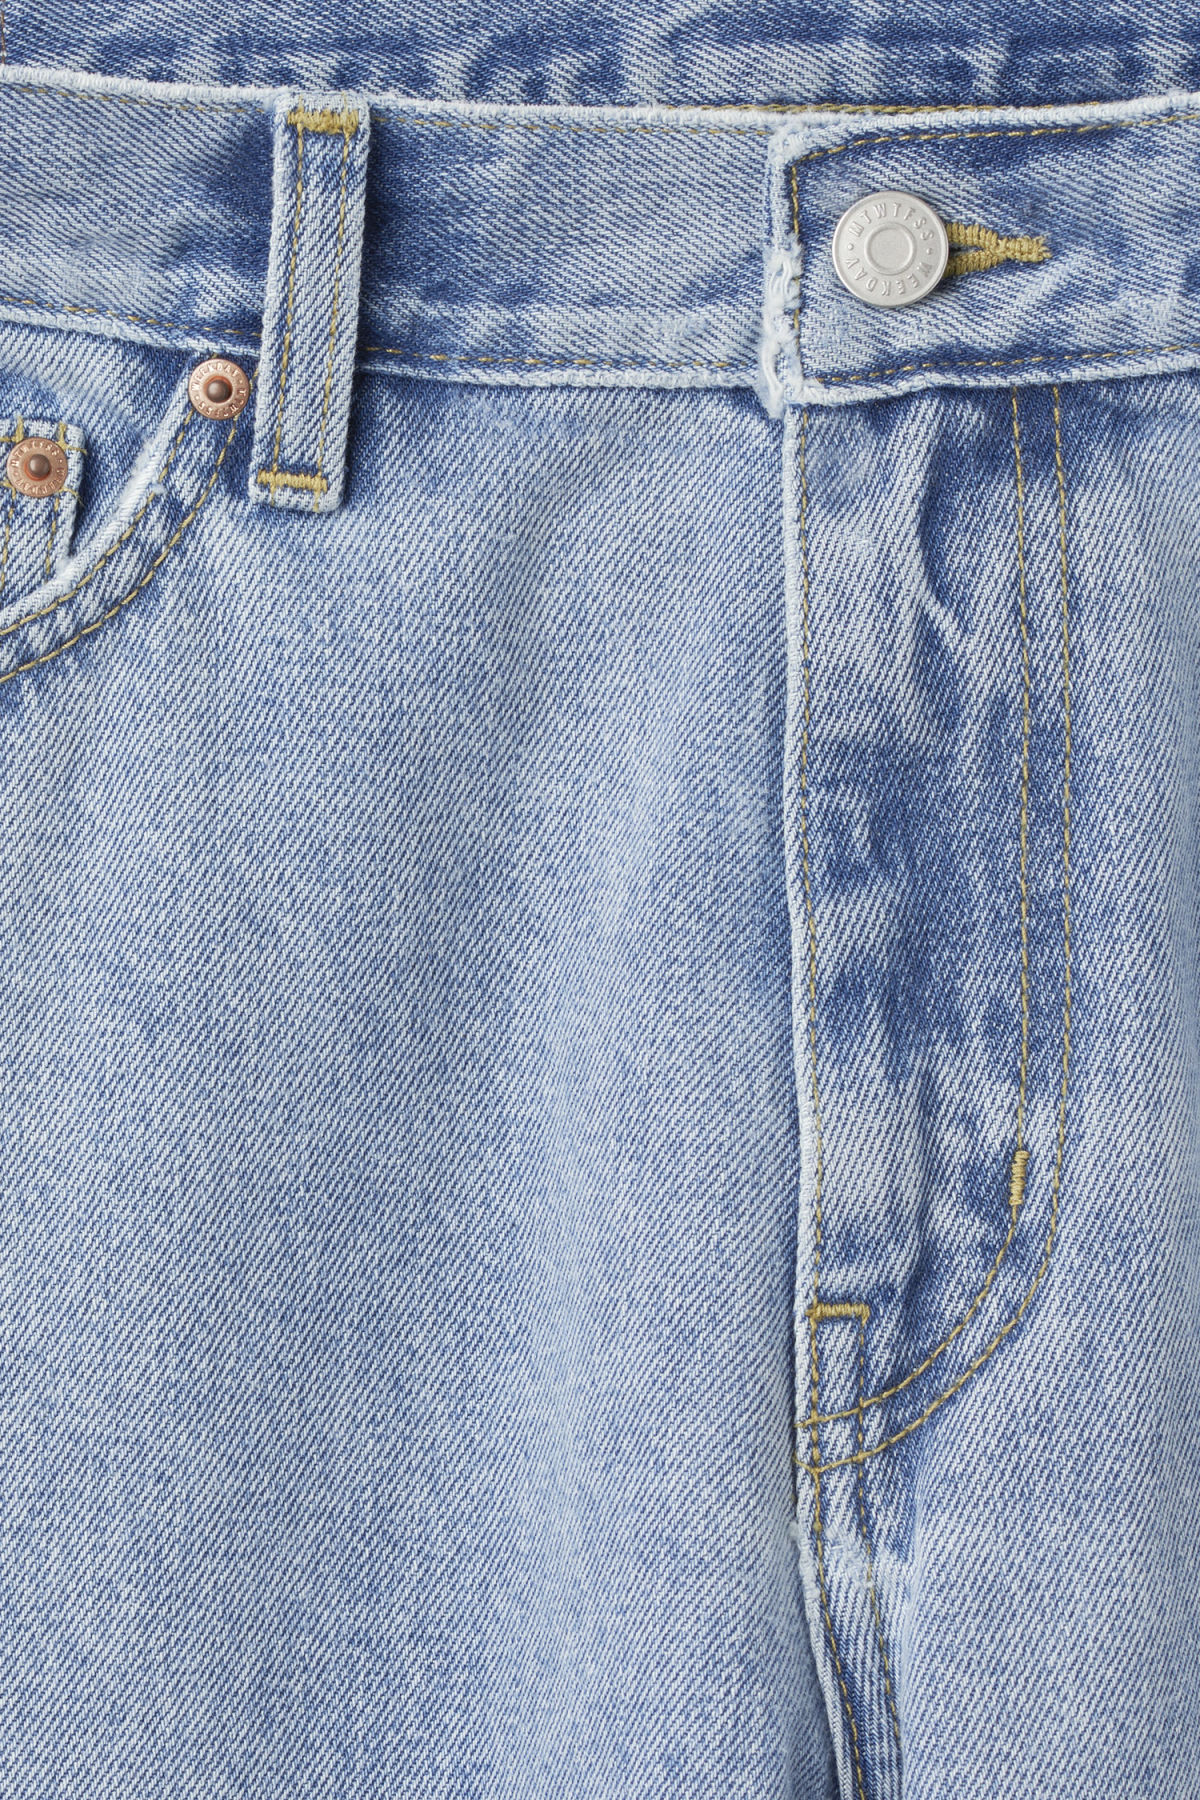 Detailed image of Weekday sharp lagoon blue jeans in blue